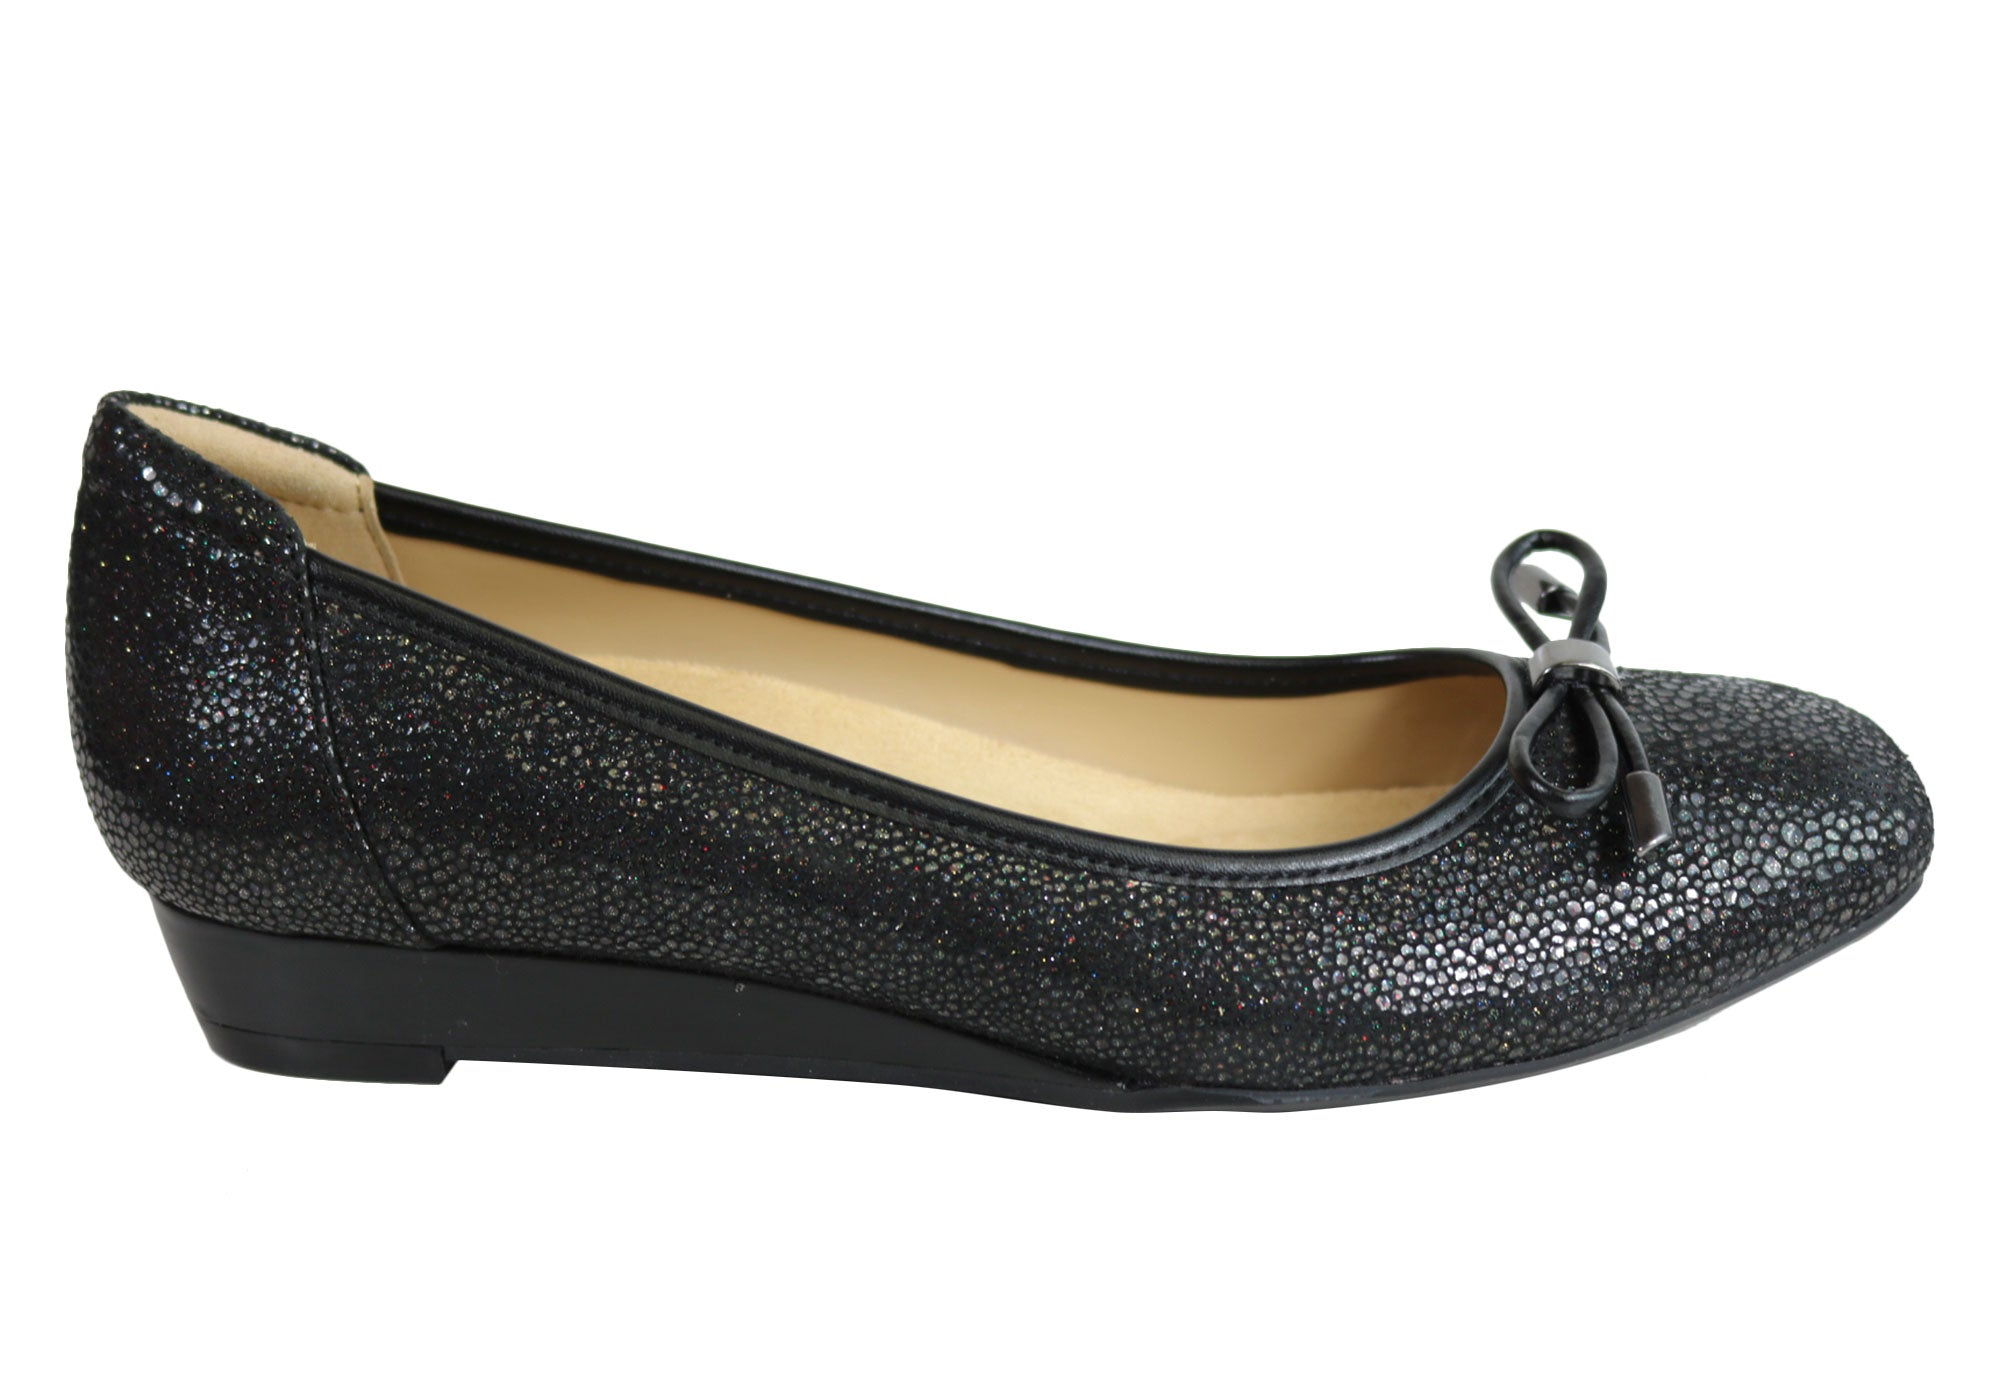 66733c213cc Home Naturalizer Dove Womens Comfortable Leather Wedge Pump Shoes. Black  Pebble ...